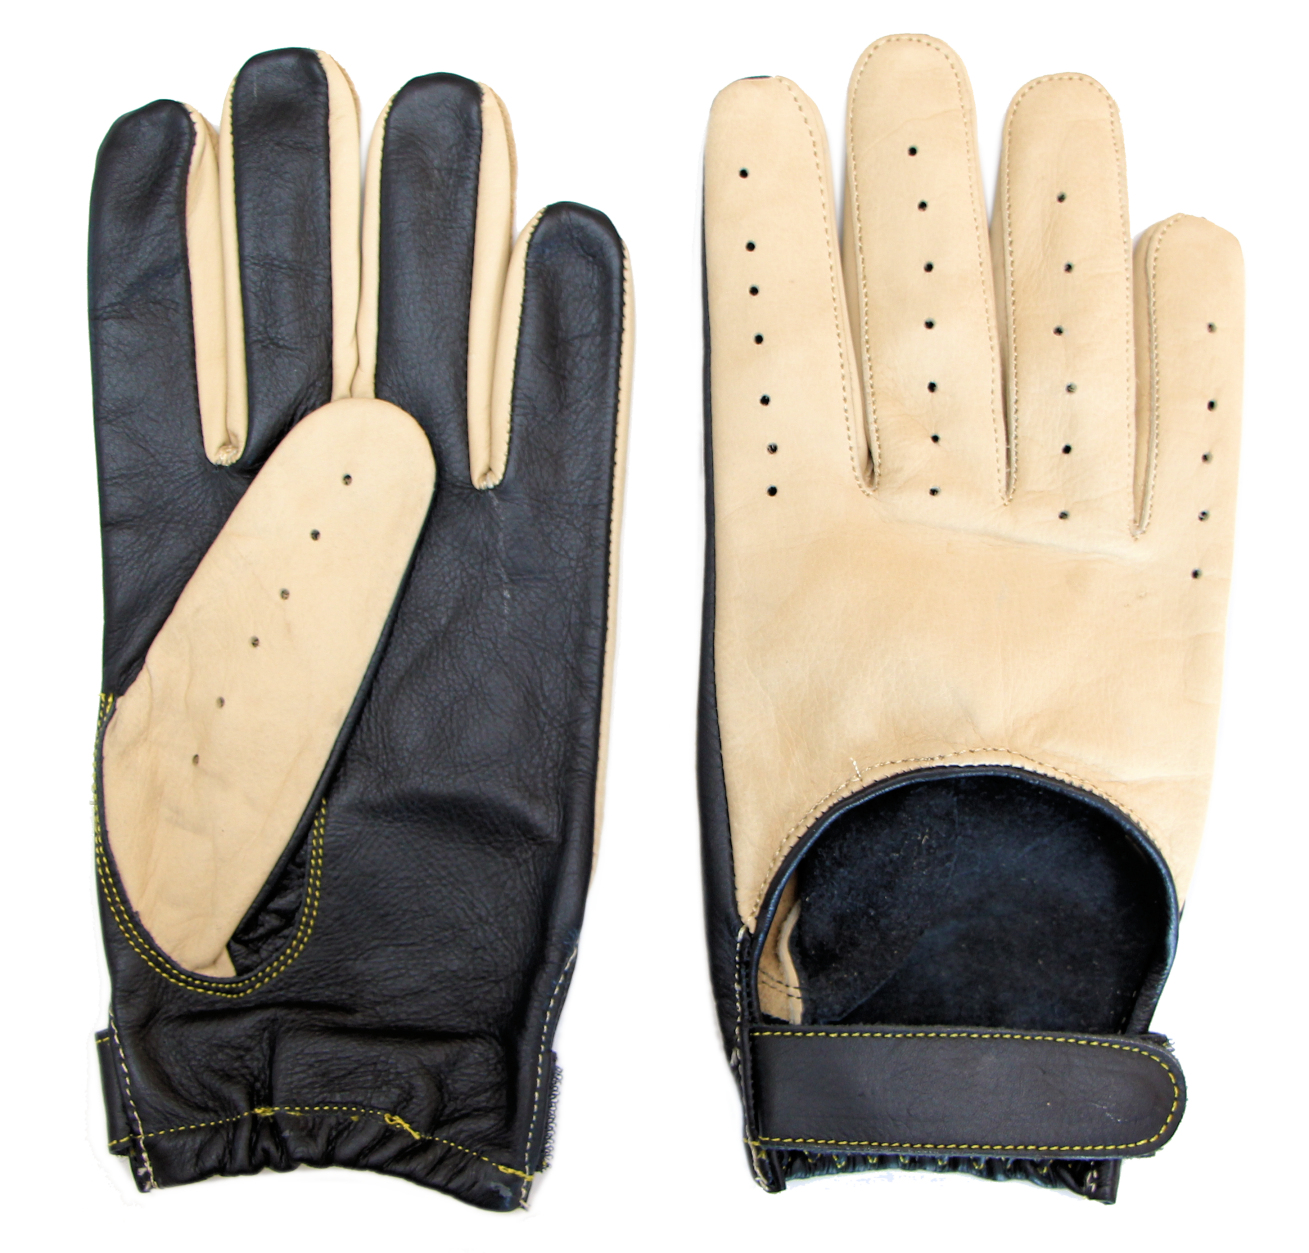 Falcon Gloves